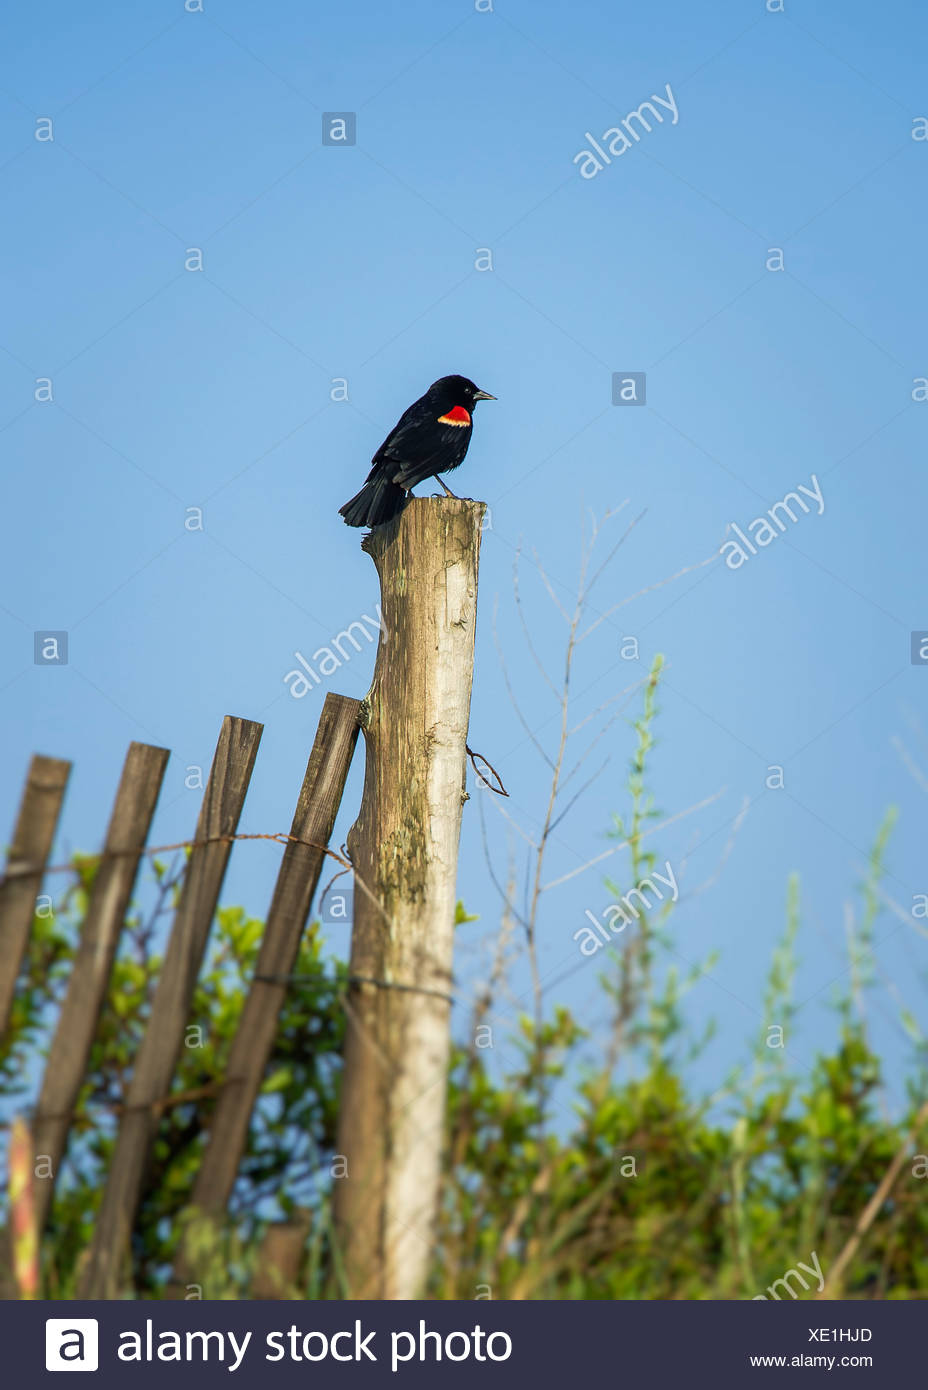 Red-winged blackbird, Agelaius phoeniceus - Stock Image